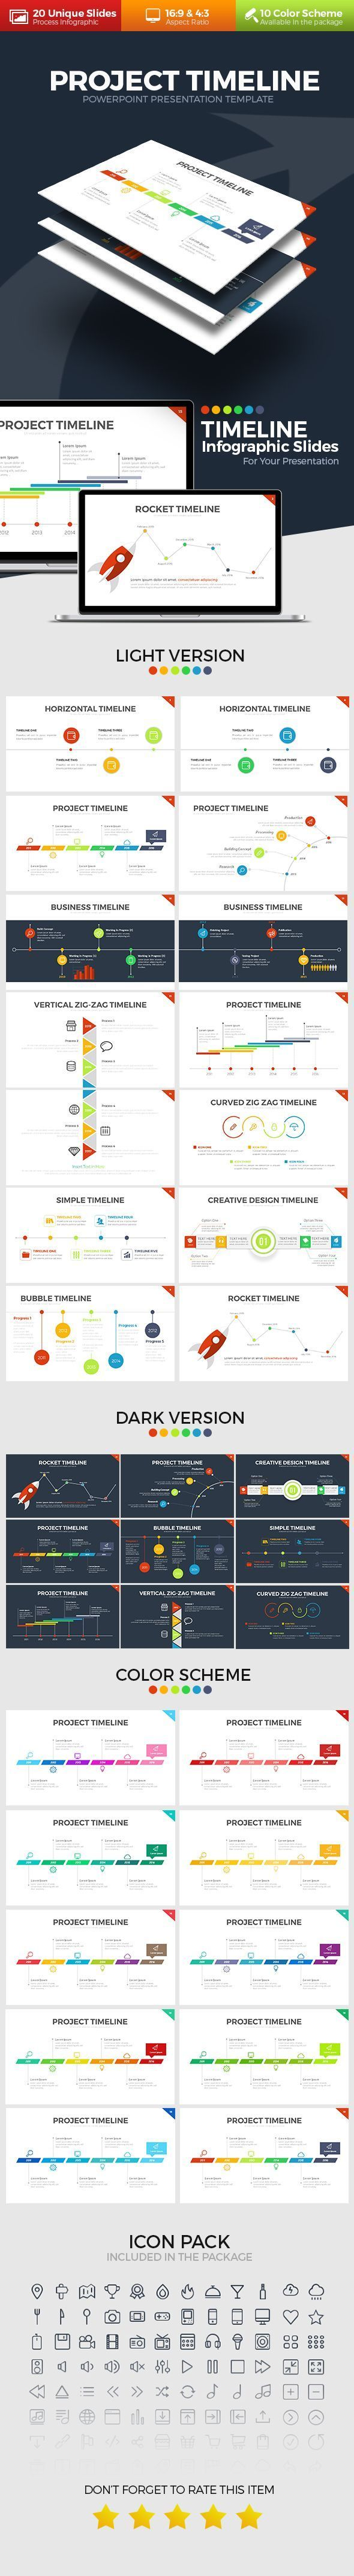 project timeline powerpoint template